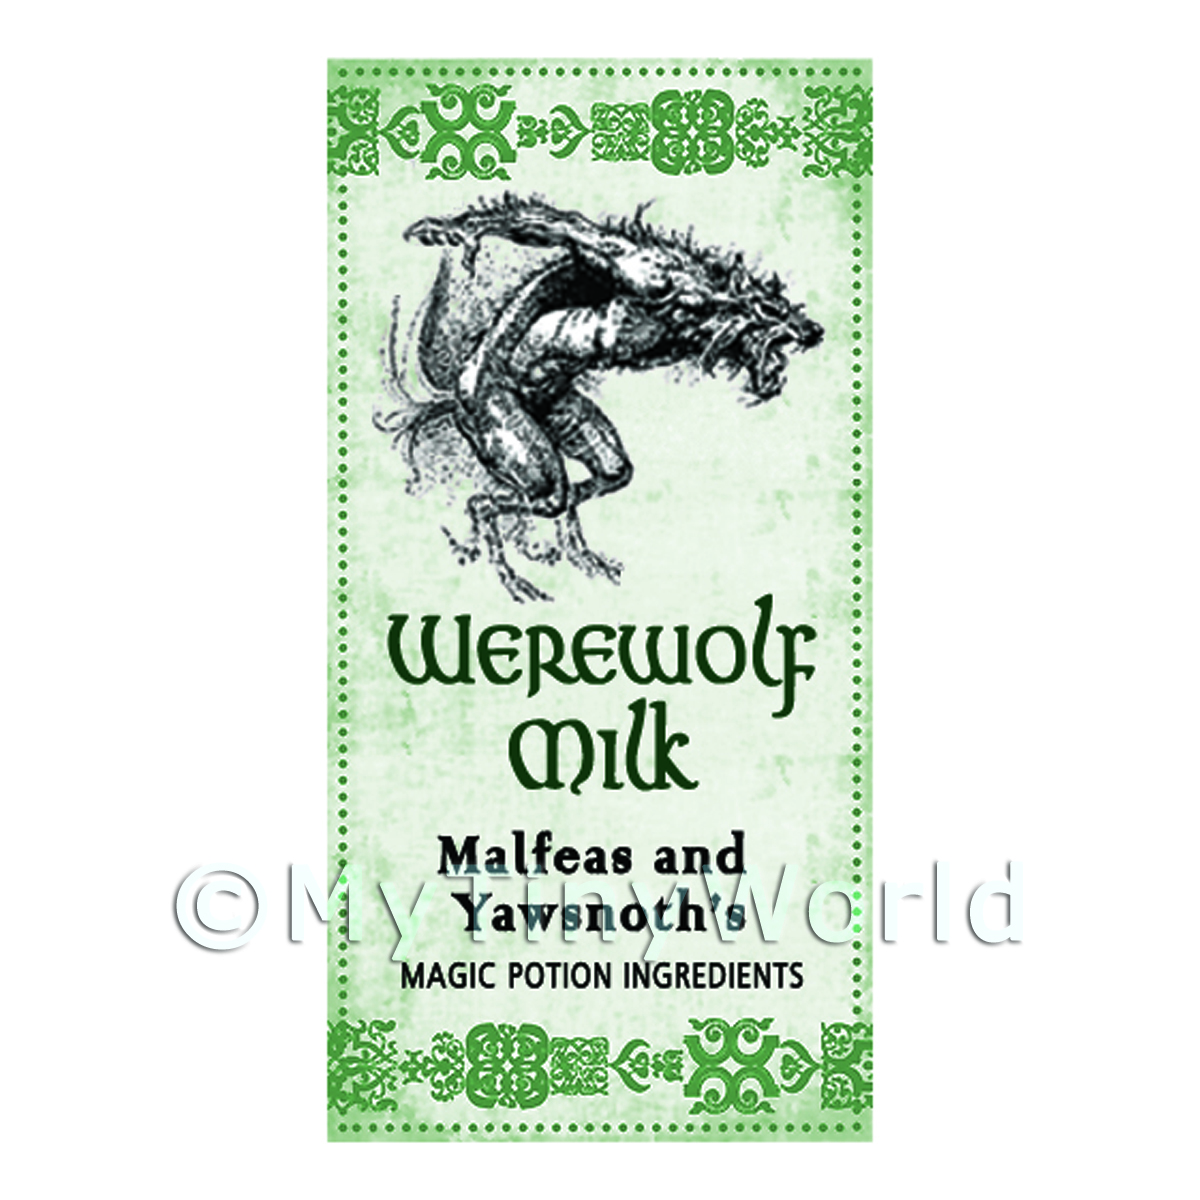 Dolls House Miniature Werewolf Milk Magic Label (S3)